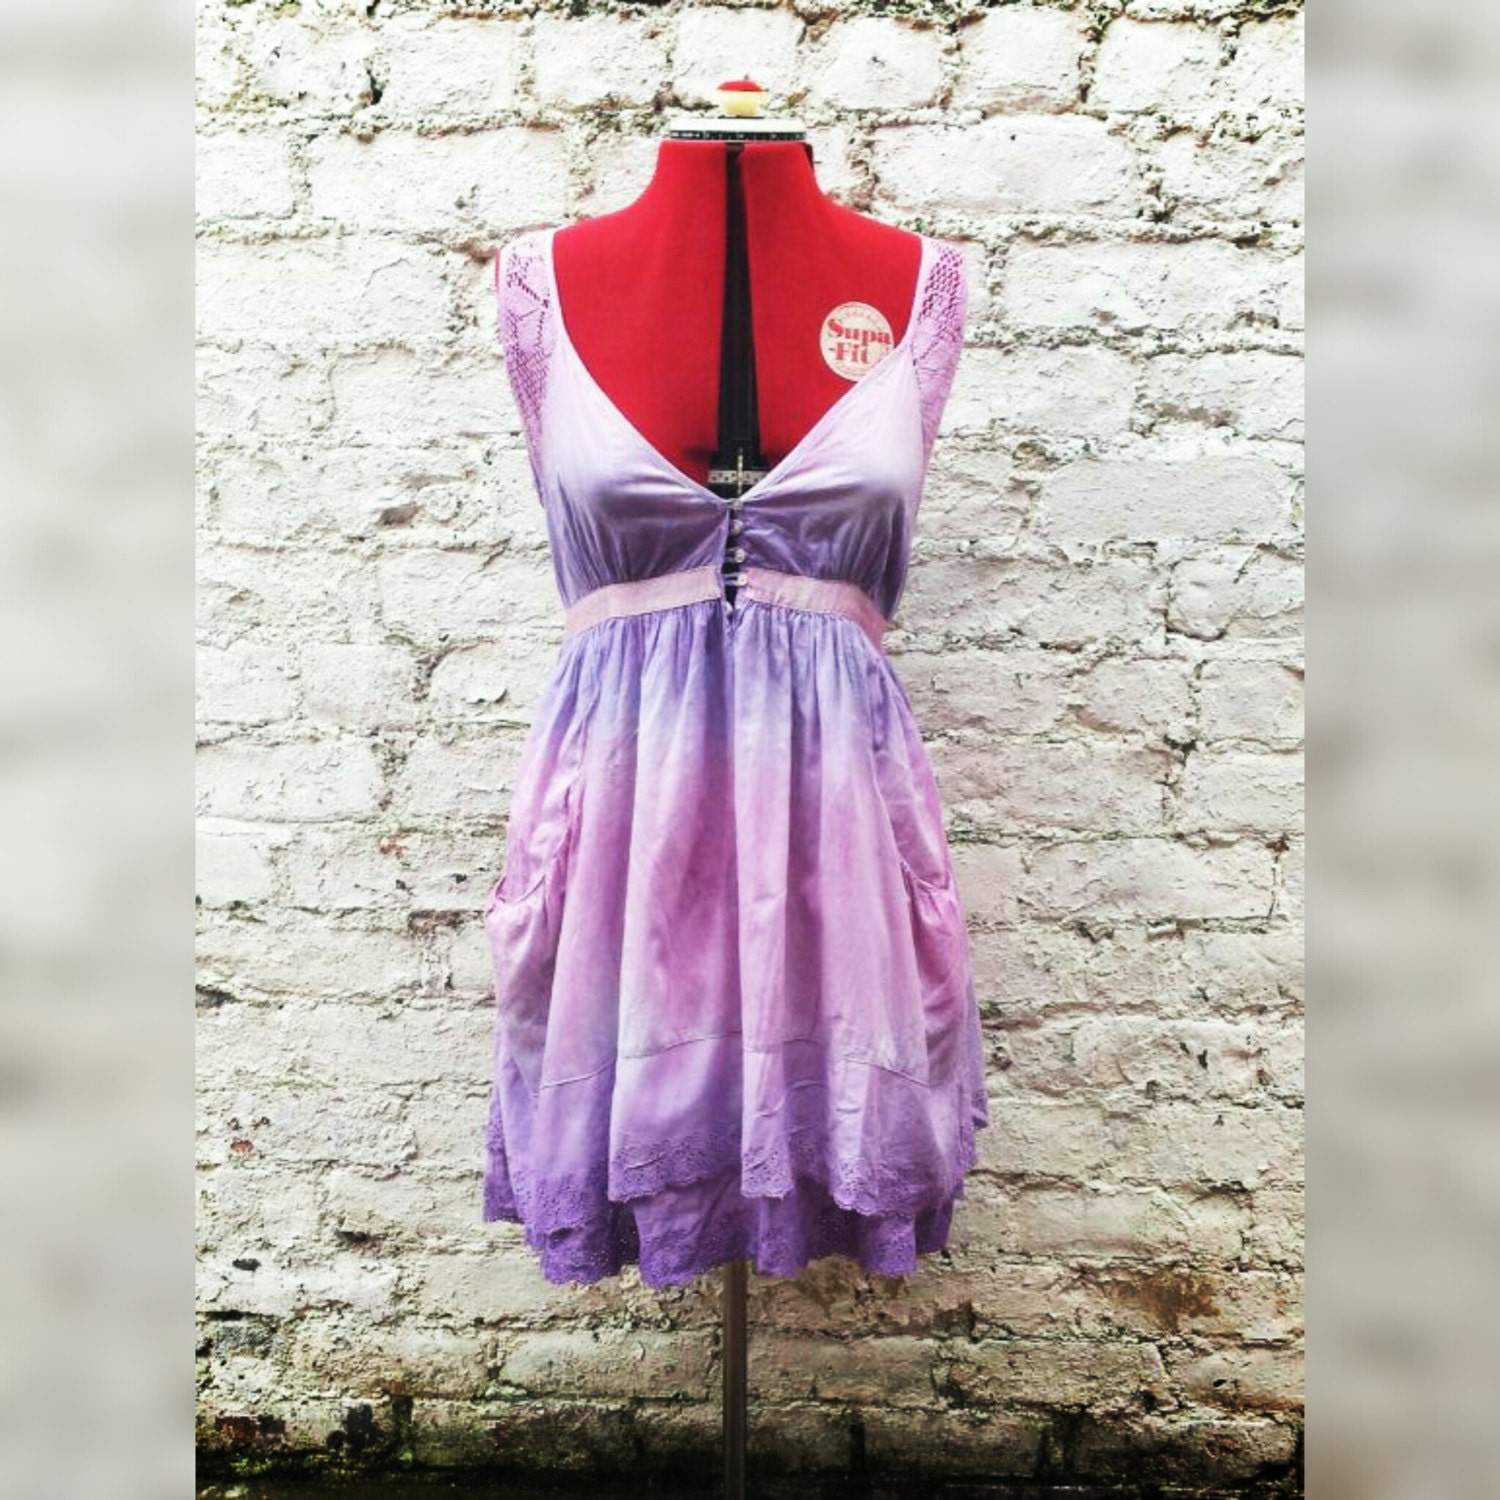 Summer dress boho wedding dress lilac pink ombre uk size 12 for Pink ombre wedding dress